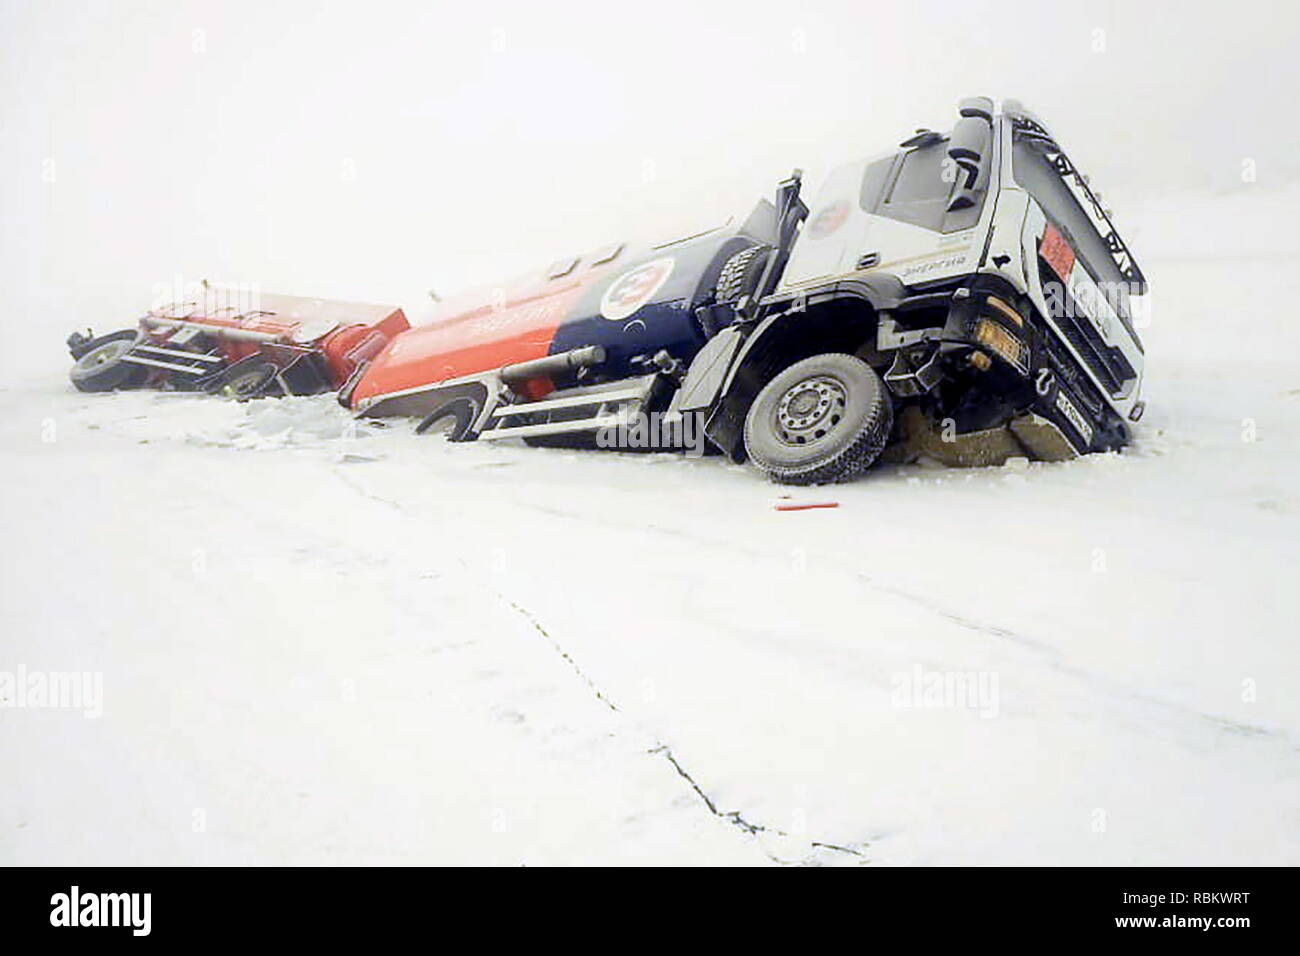 Russia. 11th Jan, 2019. SAKHA REPUBLIC (YAKUTIA), RUSSIA - JANUARY 11, 2019: A petrol truck fallen through the ice on the Aldan River while driving along an authorized river crossing site near the Megino-Aldan settlement in the Tomponsky District. The Sakha Republic (Yakutia) Branch of the Russian Emergency Situations Ministry/TASS Credit: ITAR-TASS News Agency/Alamy Live News - Stock Image